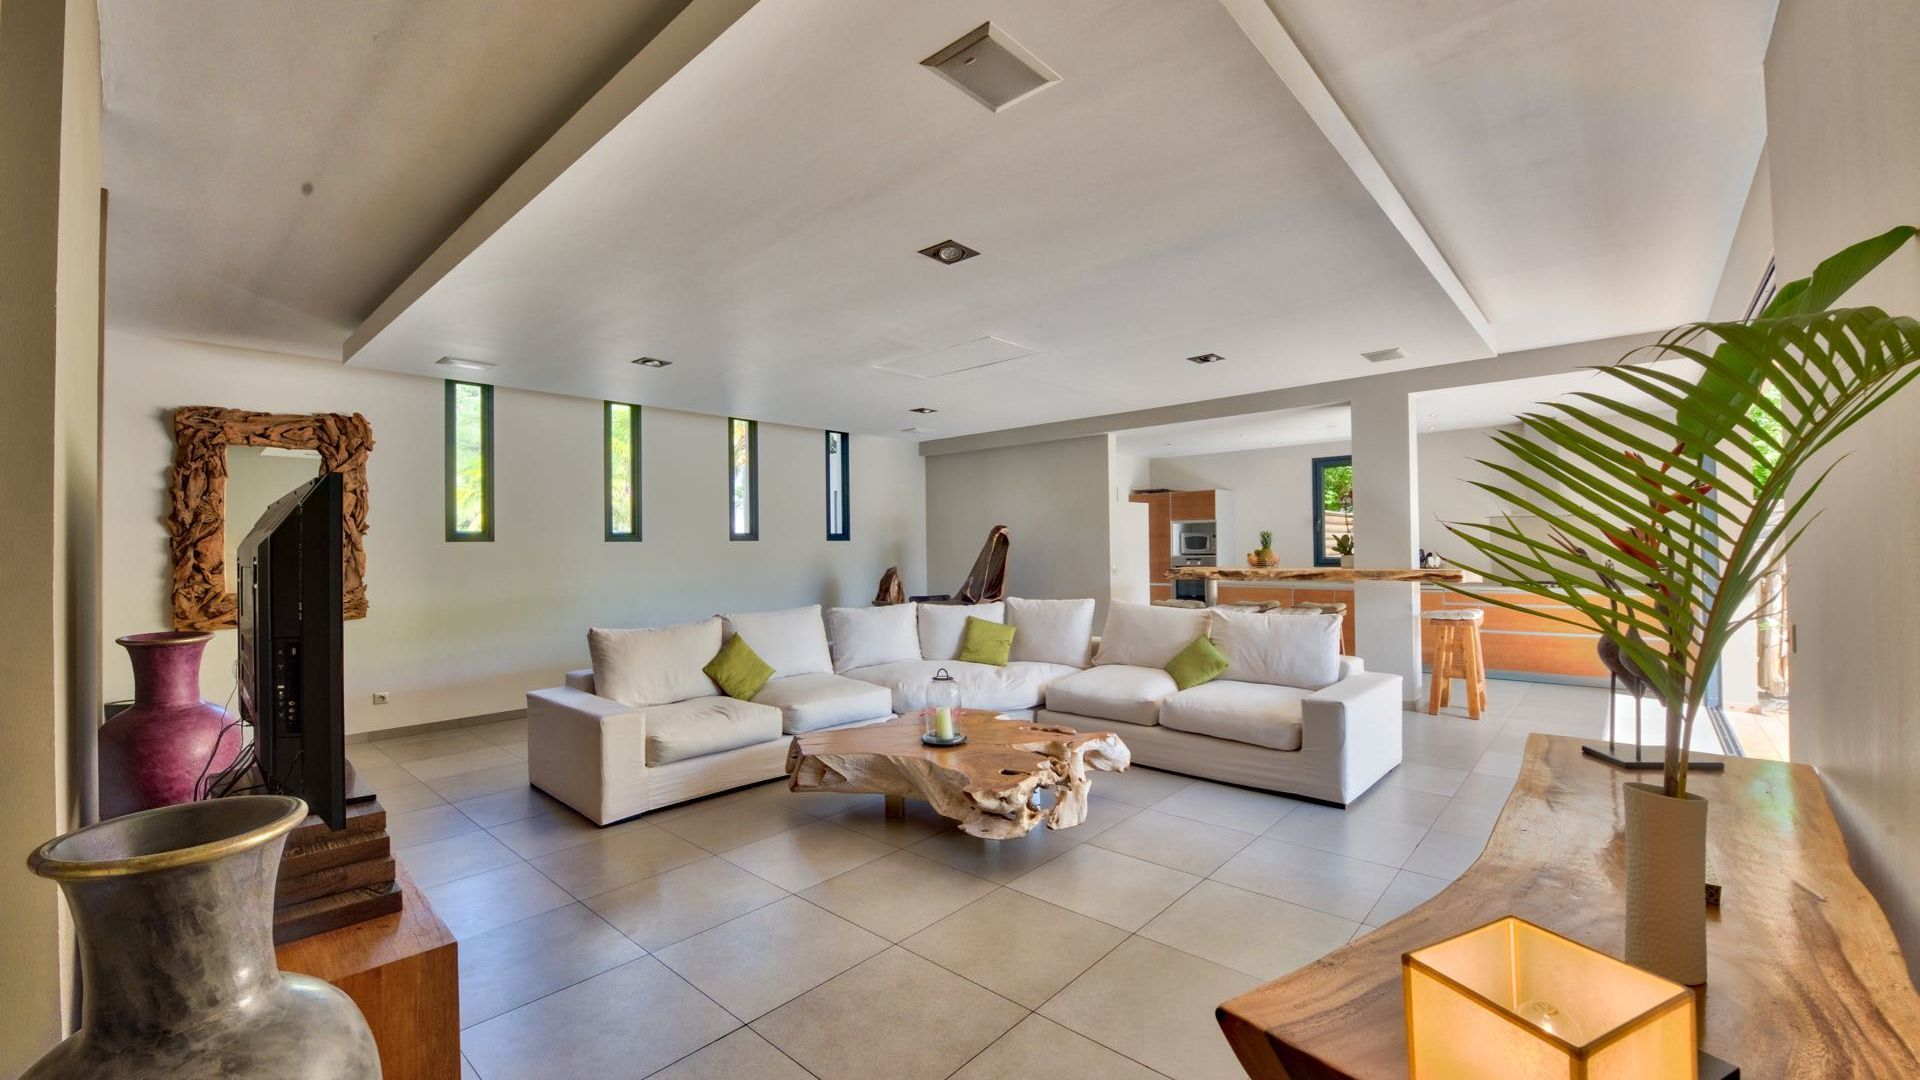 A picture of beauty and serenity, the VILLA K nestled in